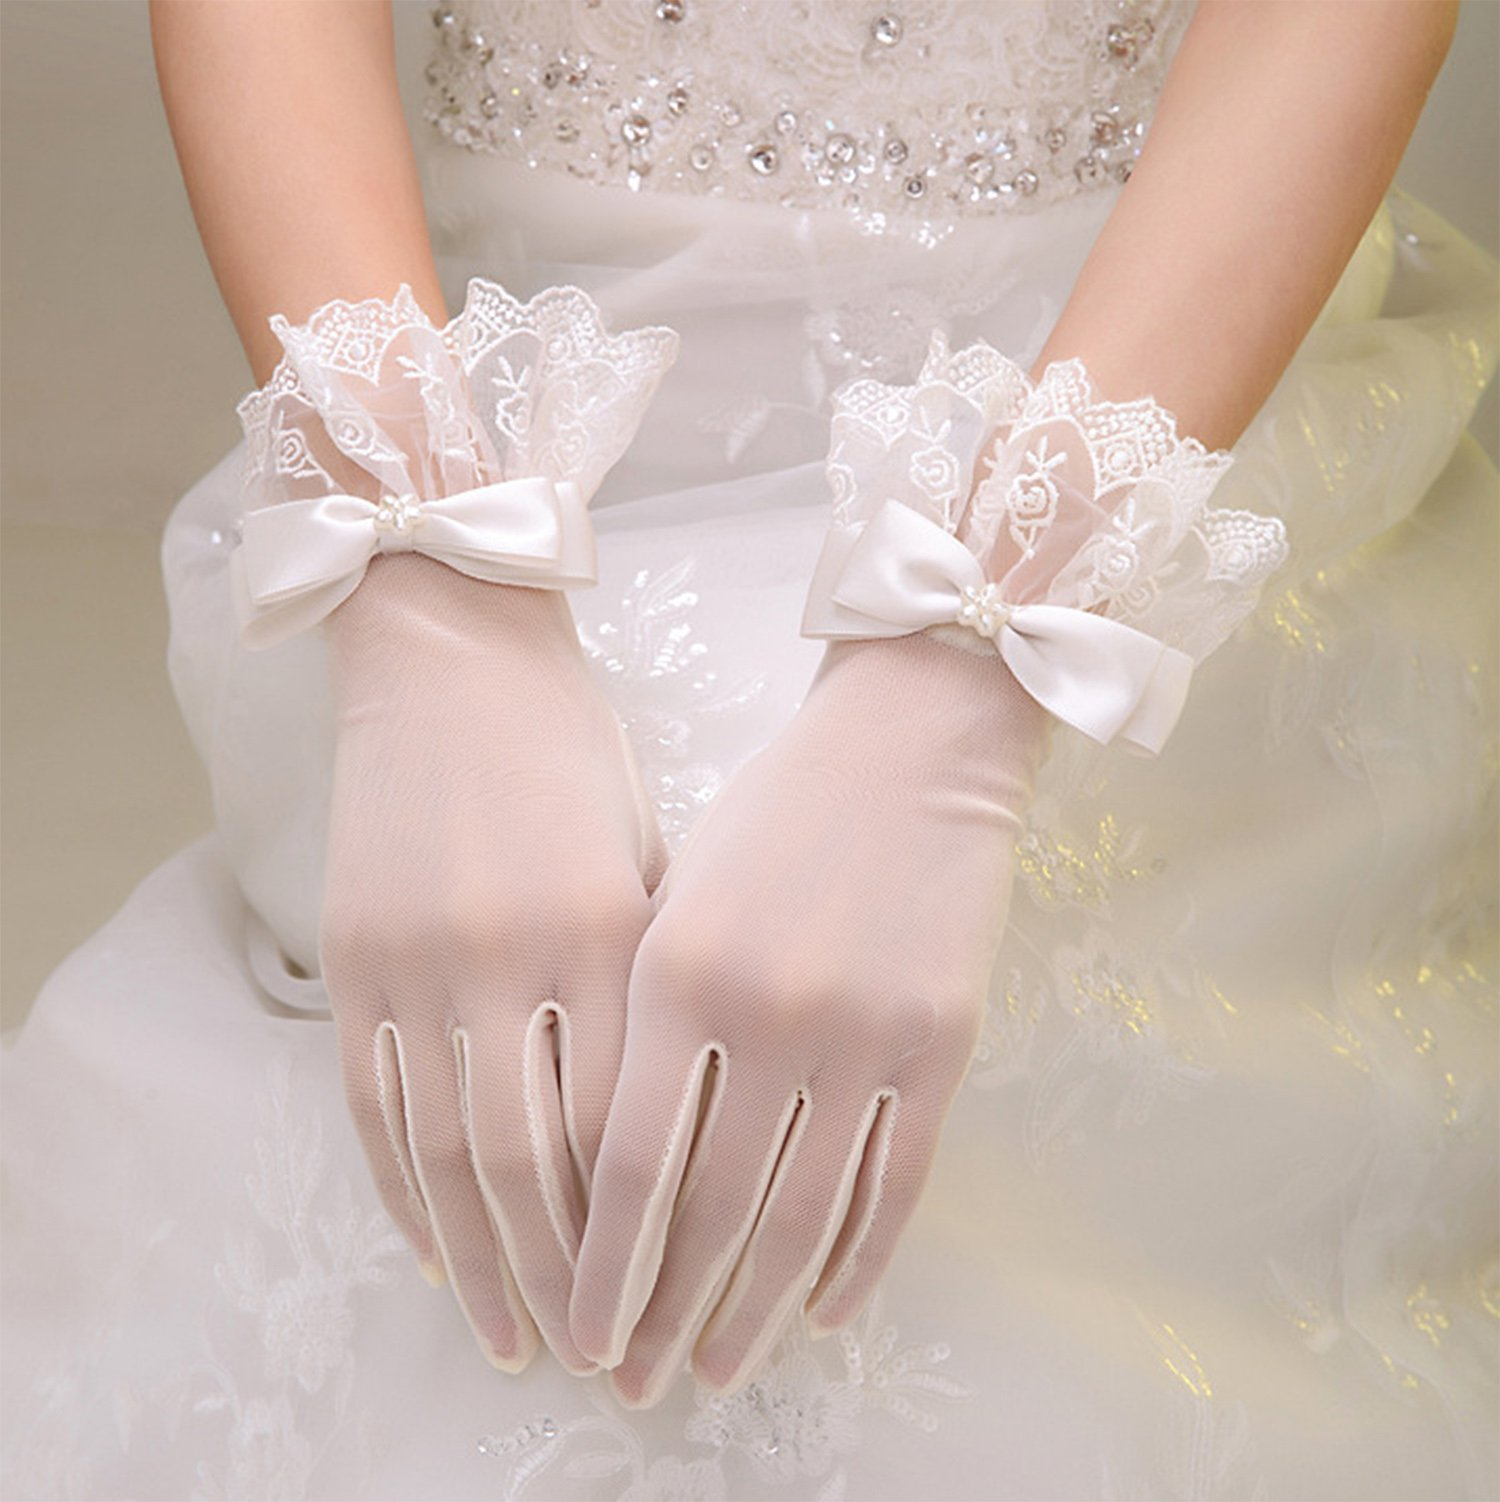 Gauss Kevin Lace Gloves UV Protection Wrist Length Prom Party Driving Wedding Gloves ShaH by Gauss Kevin (Image #2)